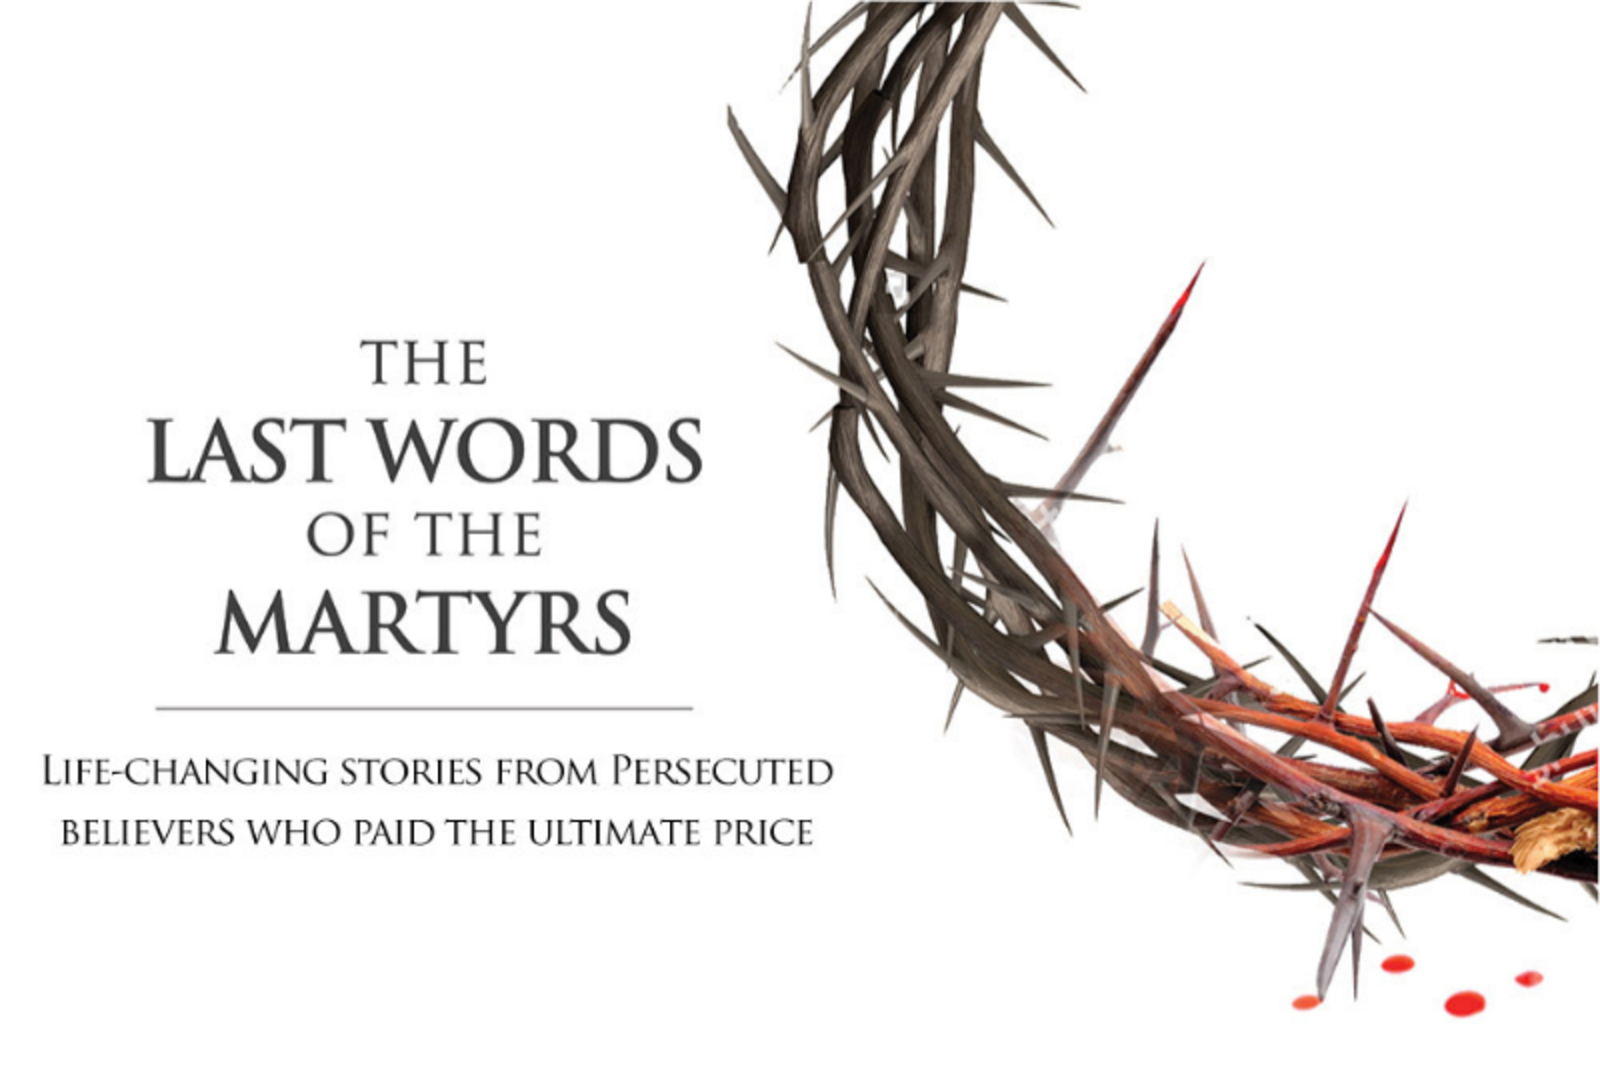 Last Words of the Martyrs book cover artwork